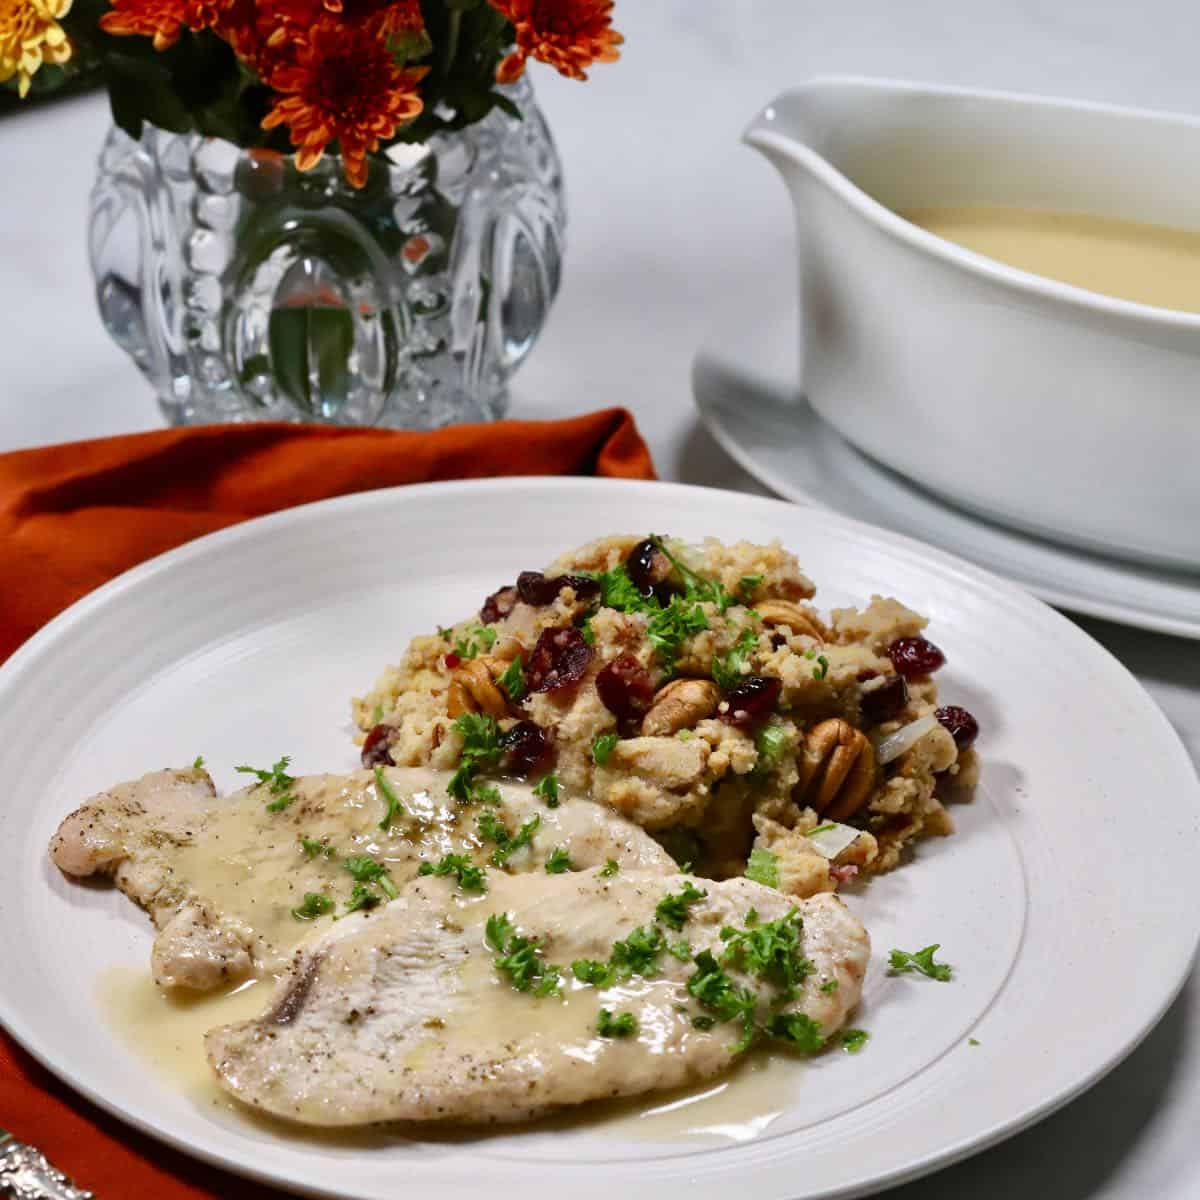 Turkey cutlets topped with gravy and a serving of cornbread dressing on a plate.